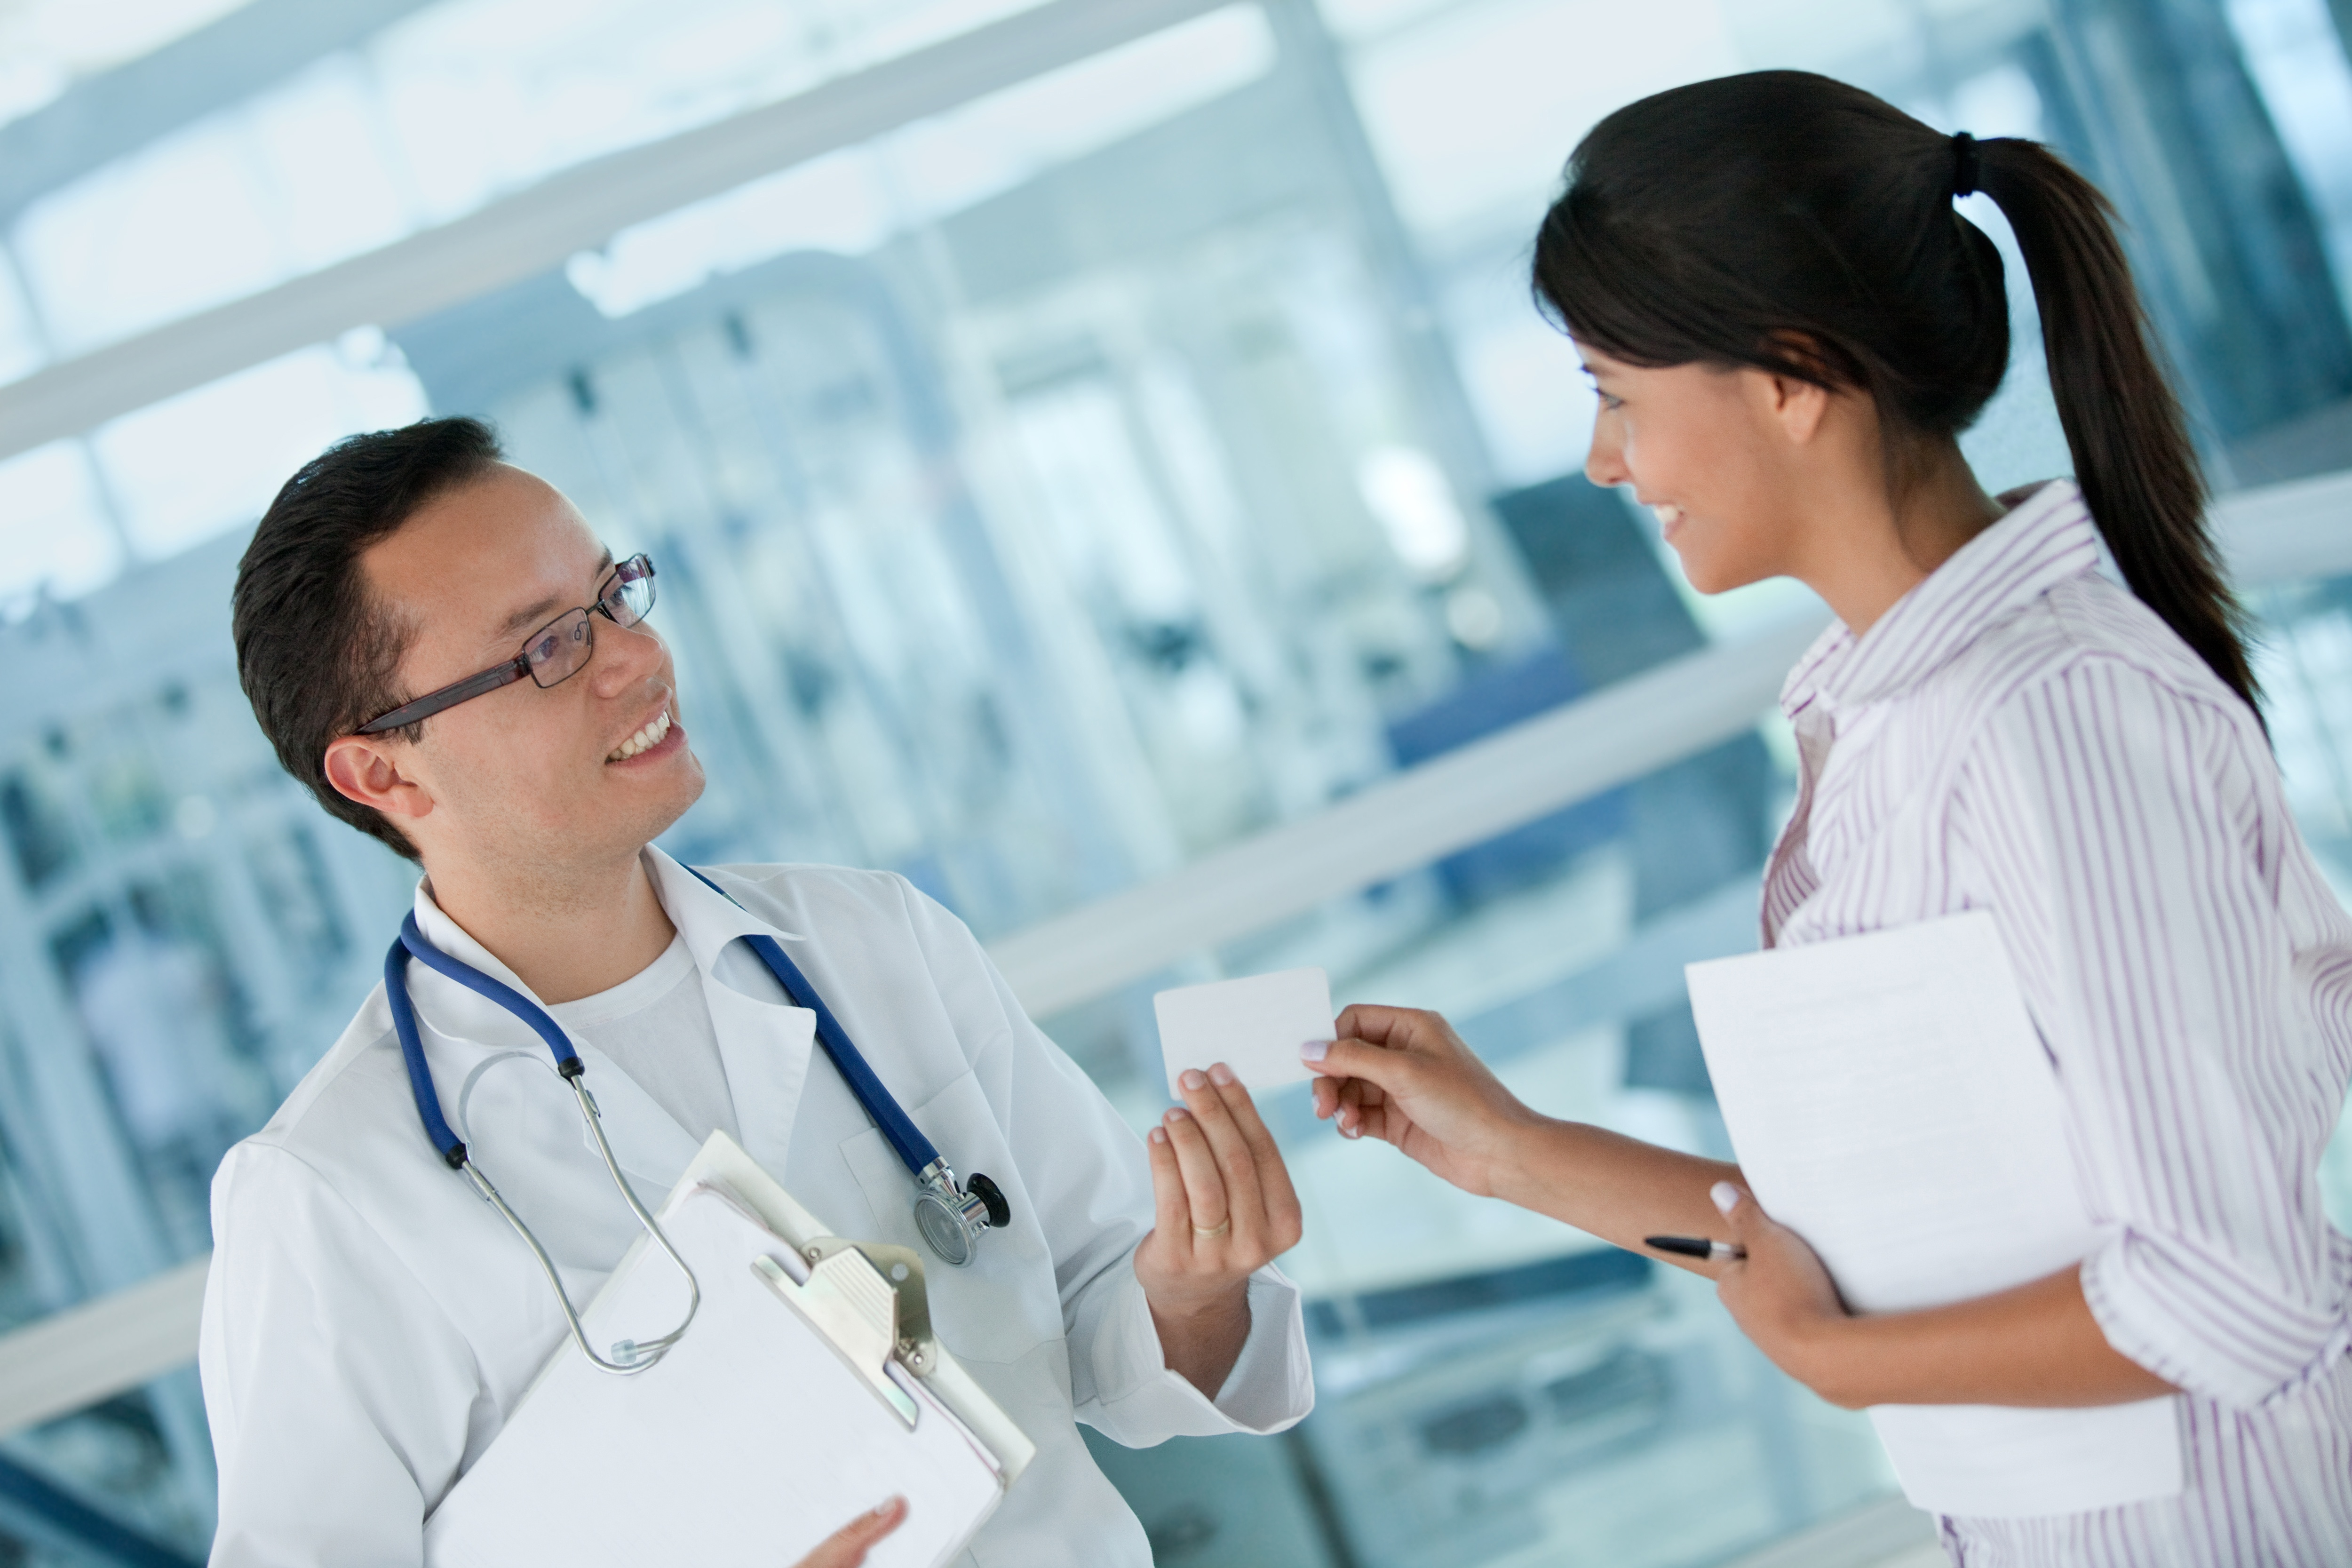 Corporate Vendor Credentialing Accounts for Healthcare Suppliers